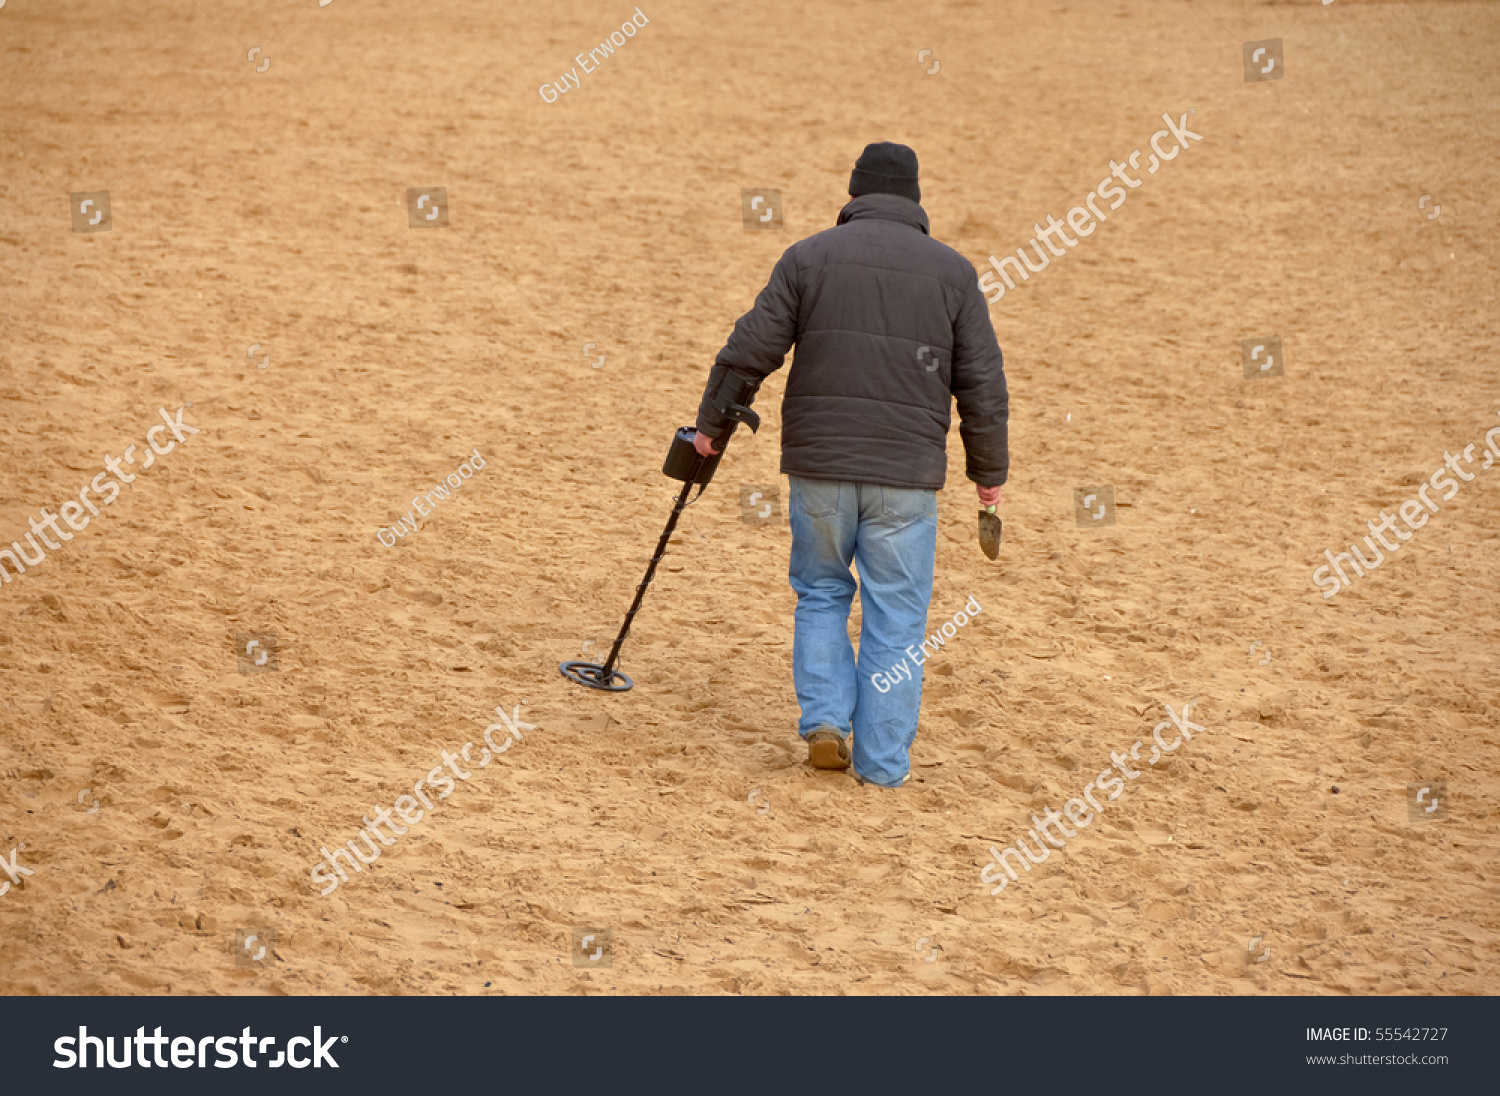 Jew Detector: Man Using Metal Detector On Sand Stock Photo 55542727